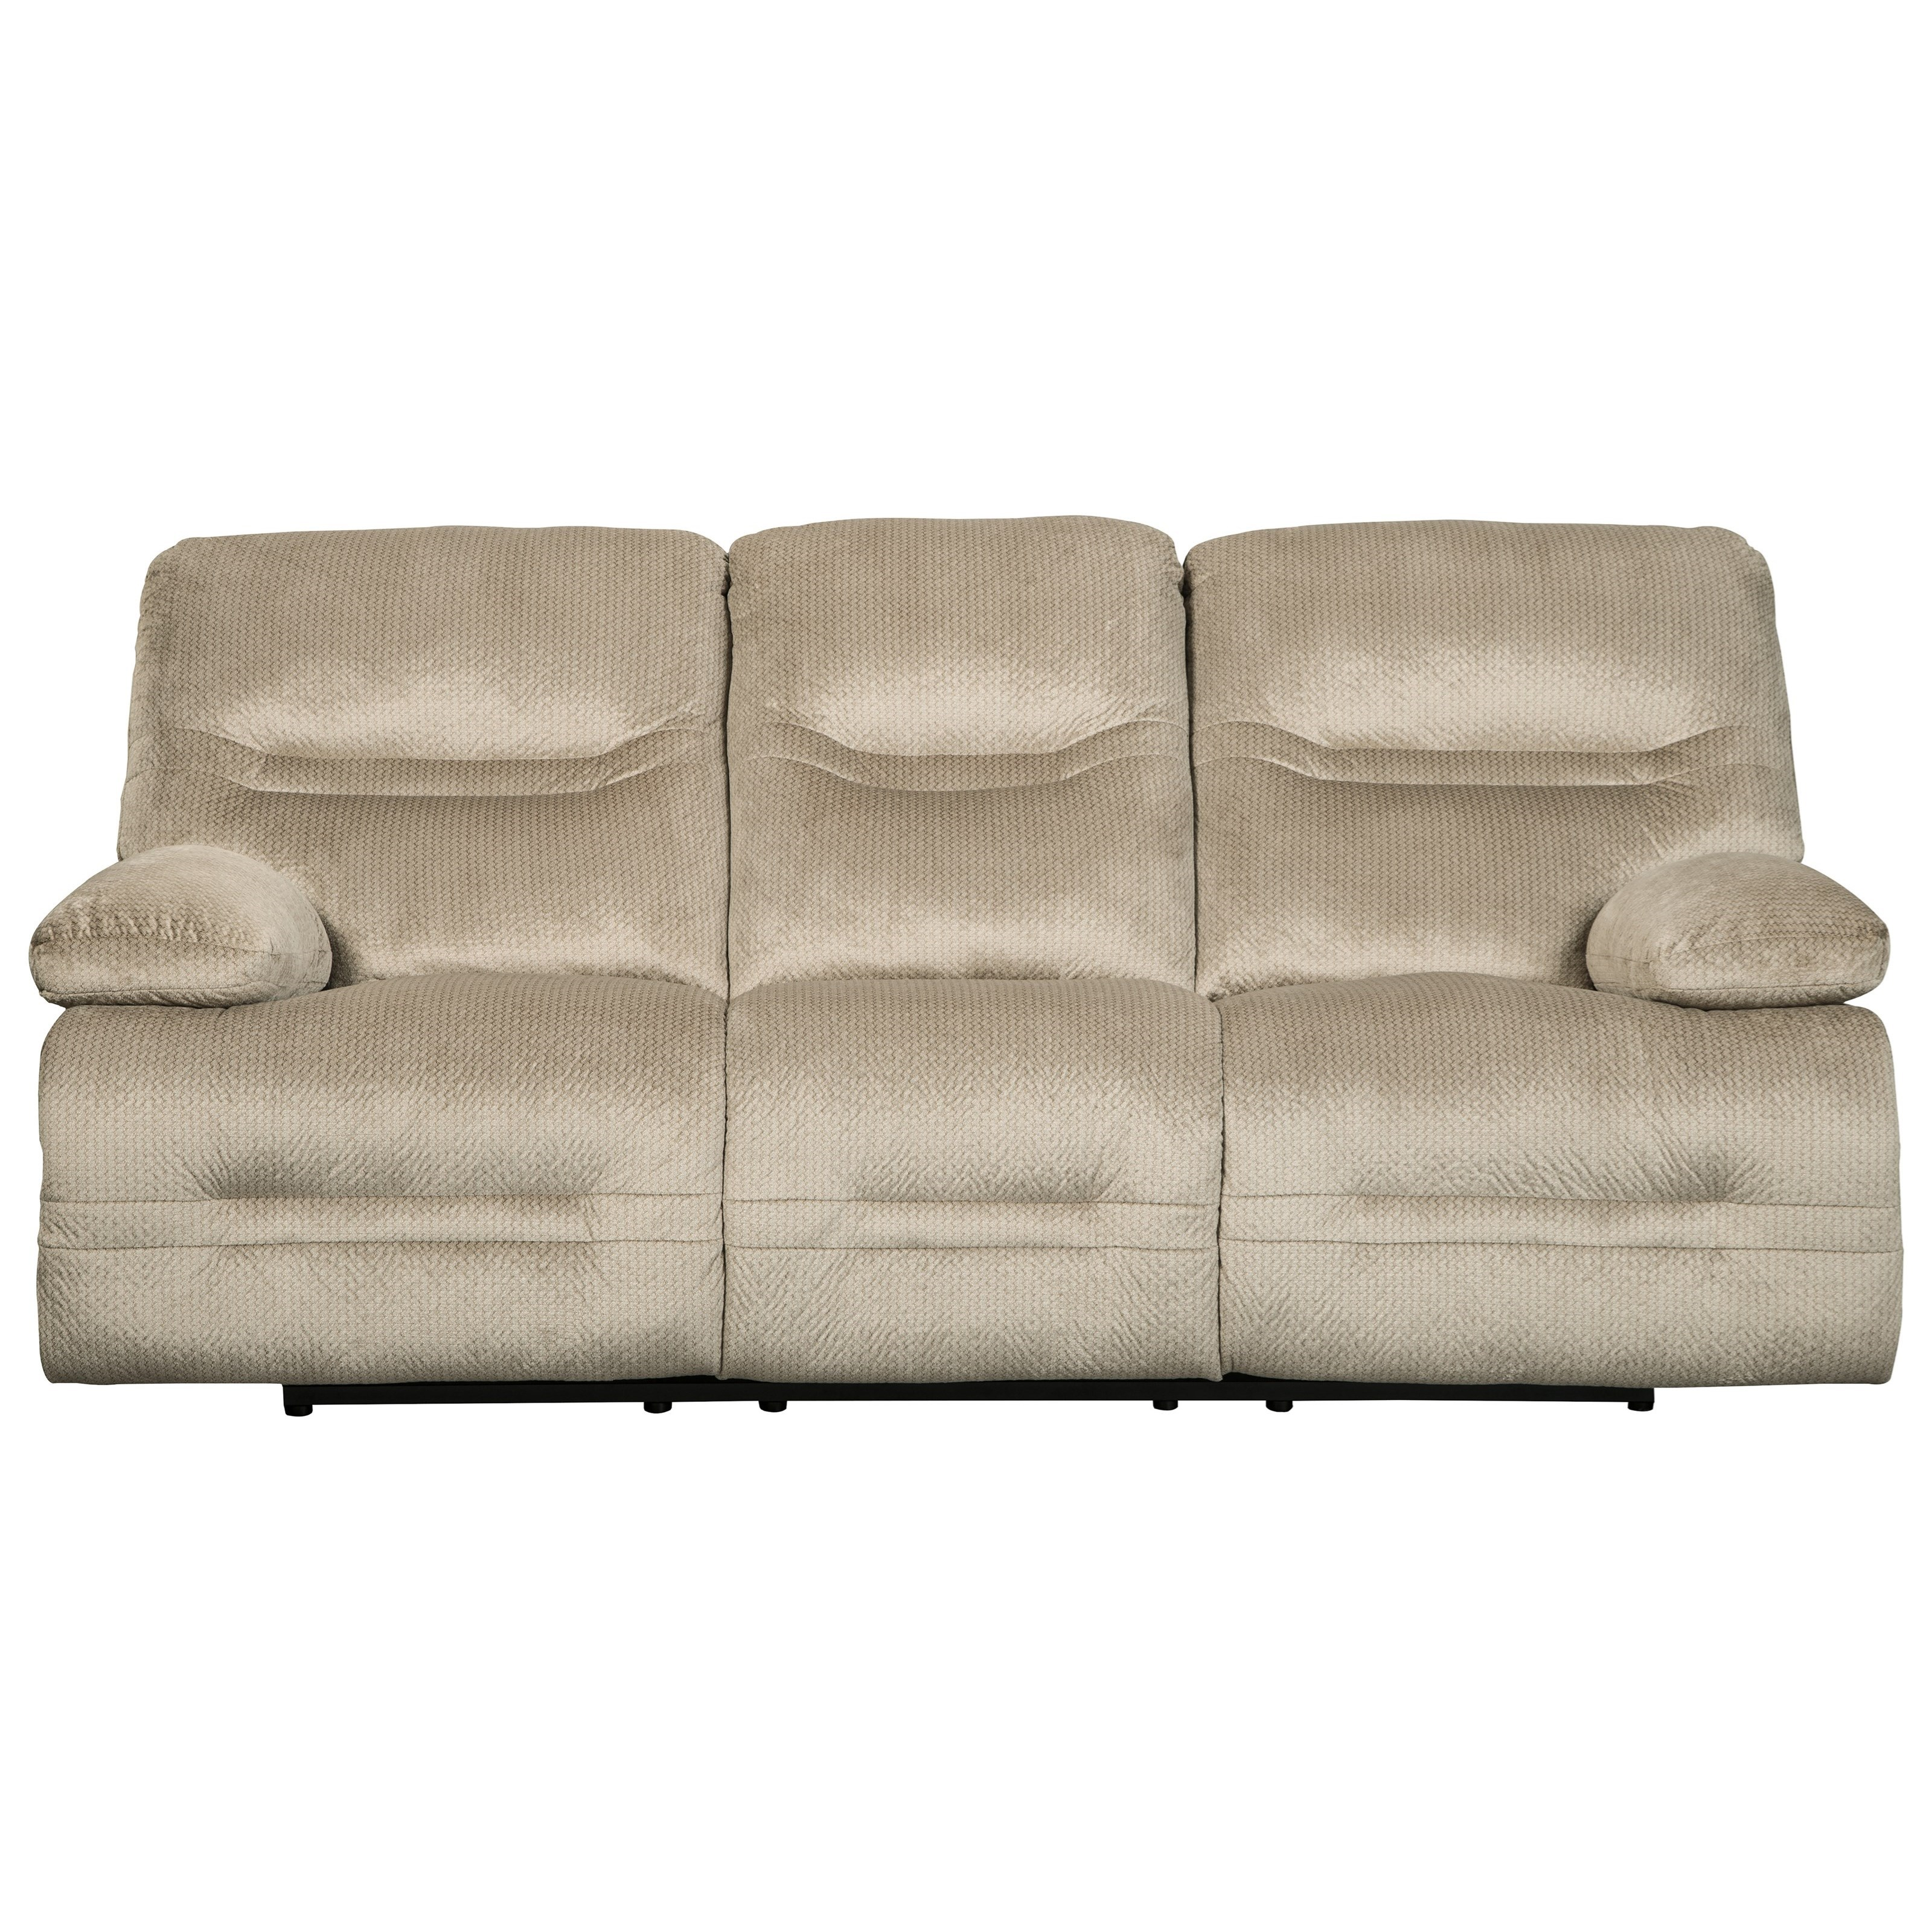 Signature Design by Ashley Brayburn Contemporary Reclining Sofa